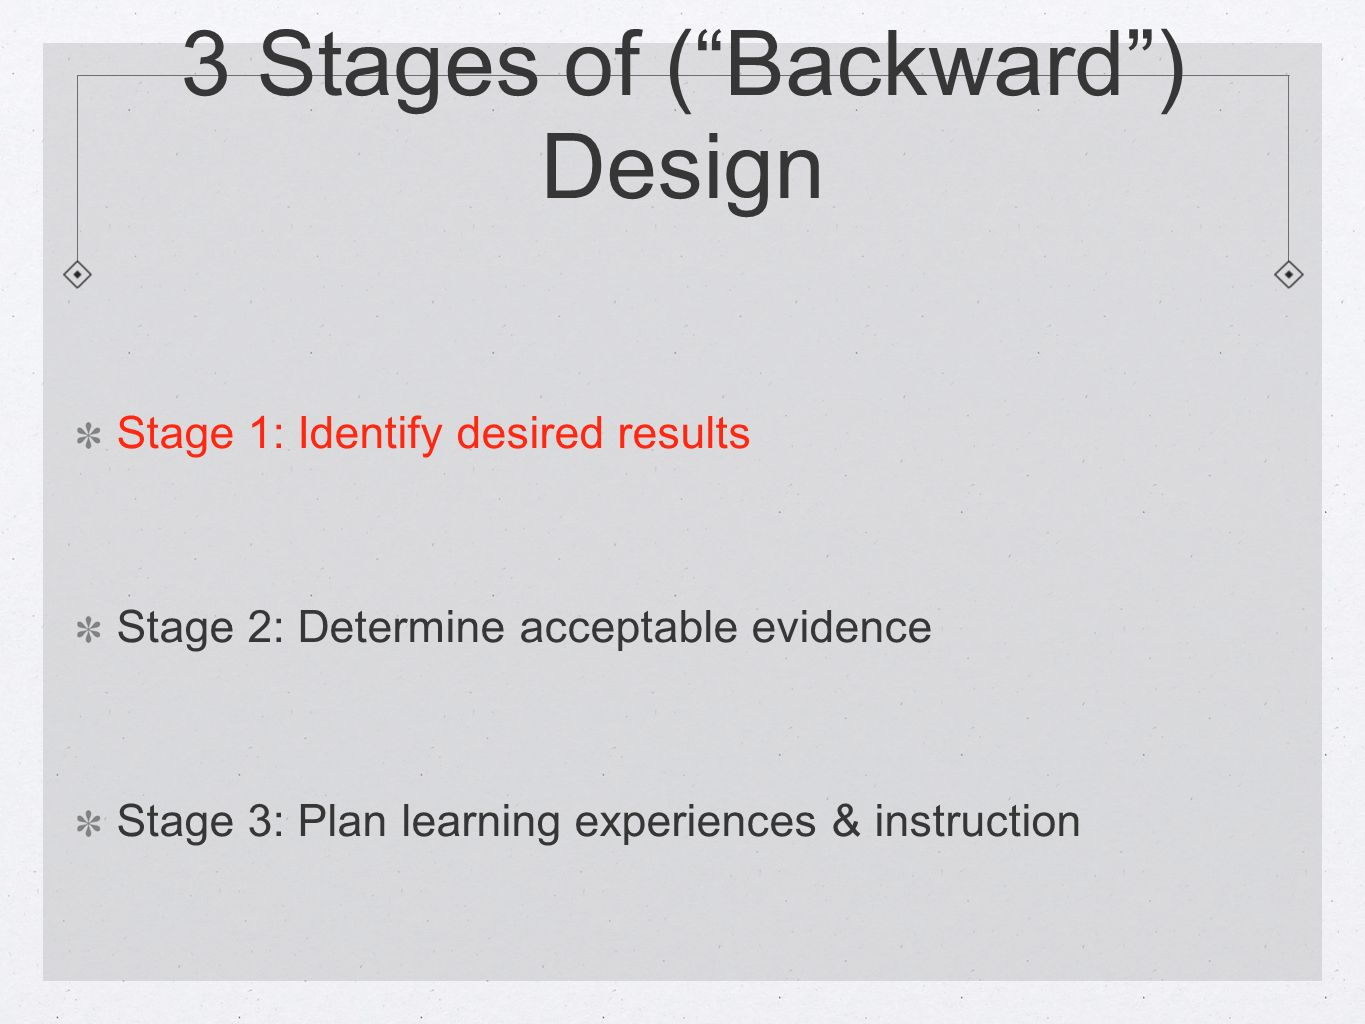 3 Stages of (Backward) Design Stage 1: Identify desired results Stage 2: Determine acceptable evidence Stage 3: Plan learning experiences & instruction